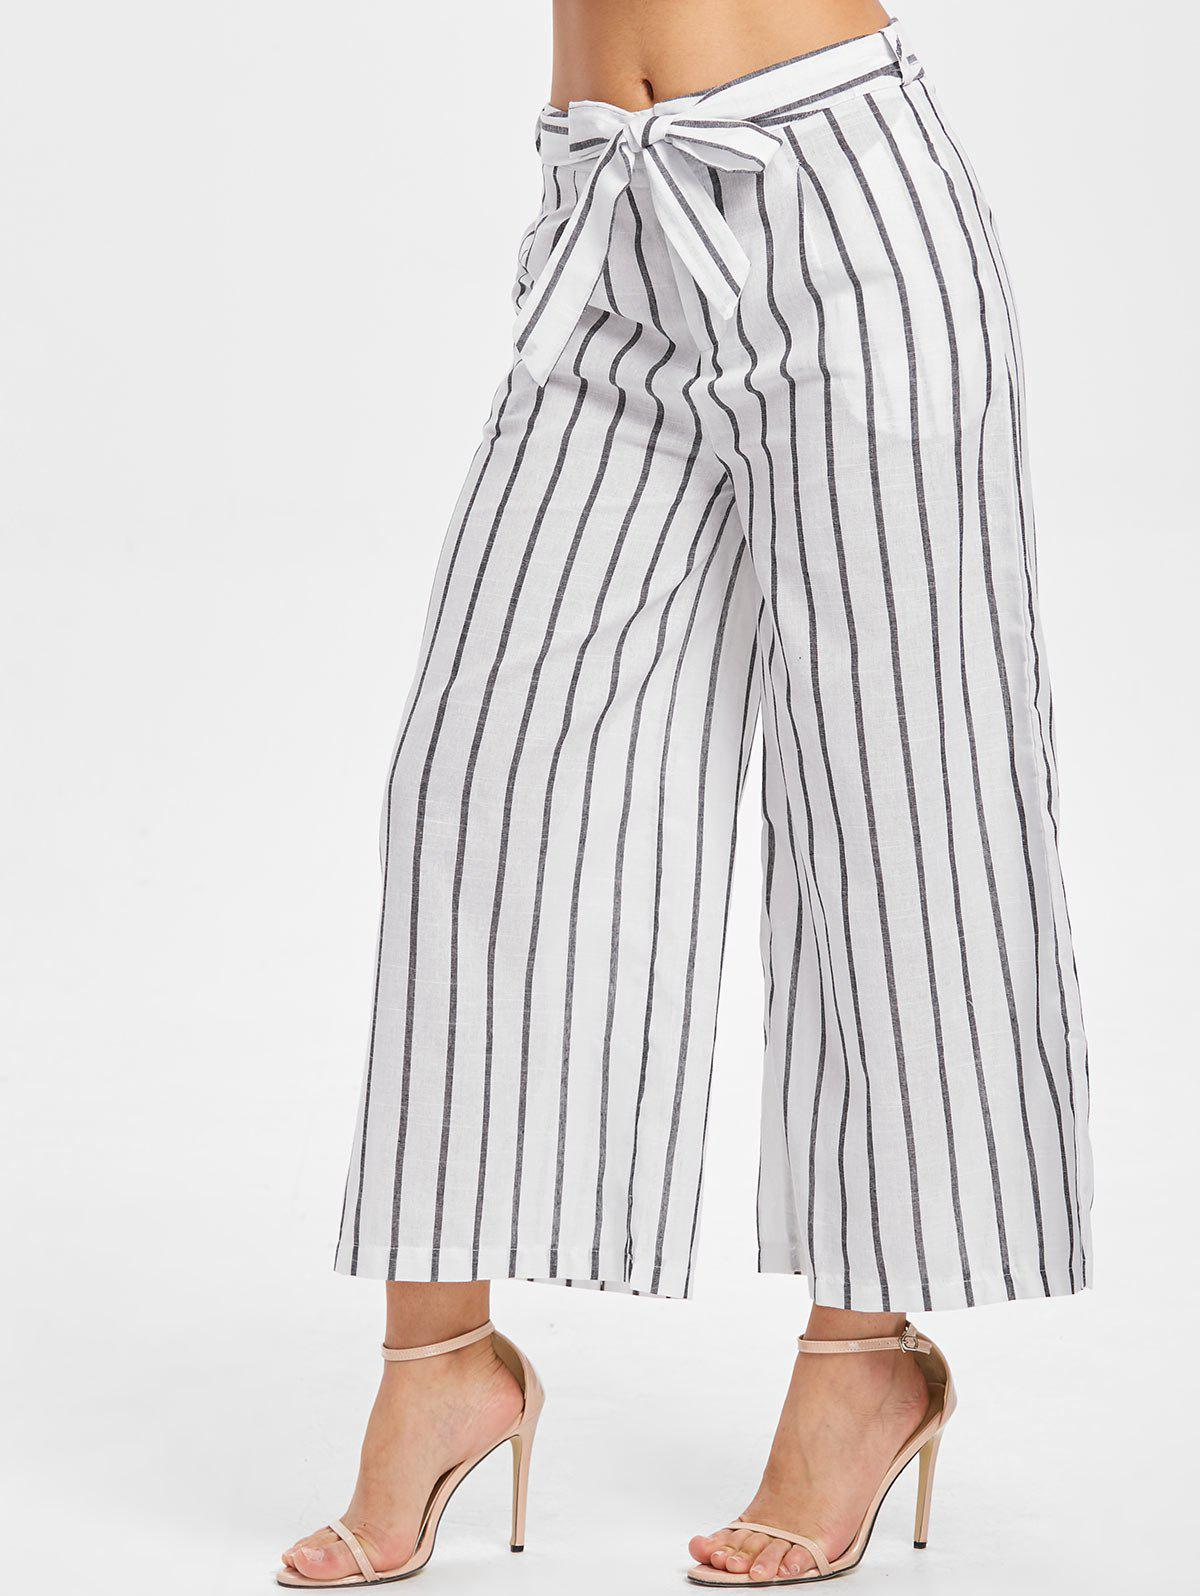 Striped Panel Wide Leg Pants with Belt - WHITE L